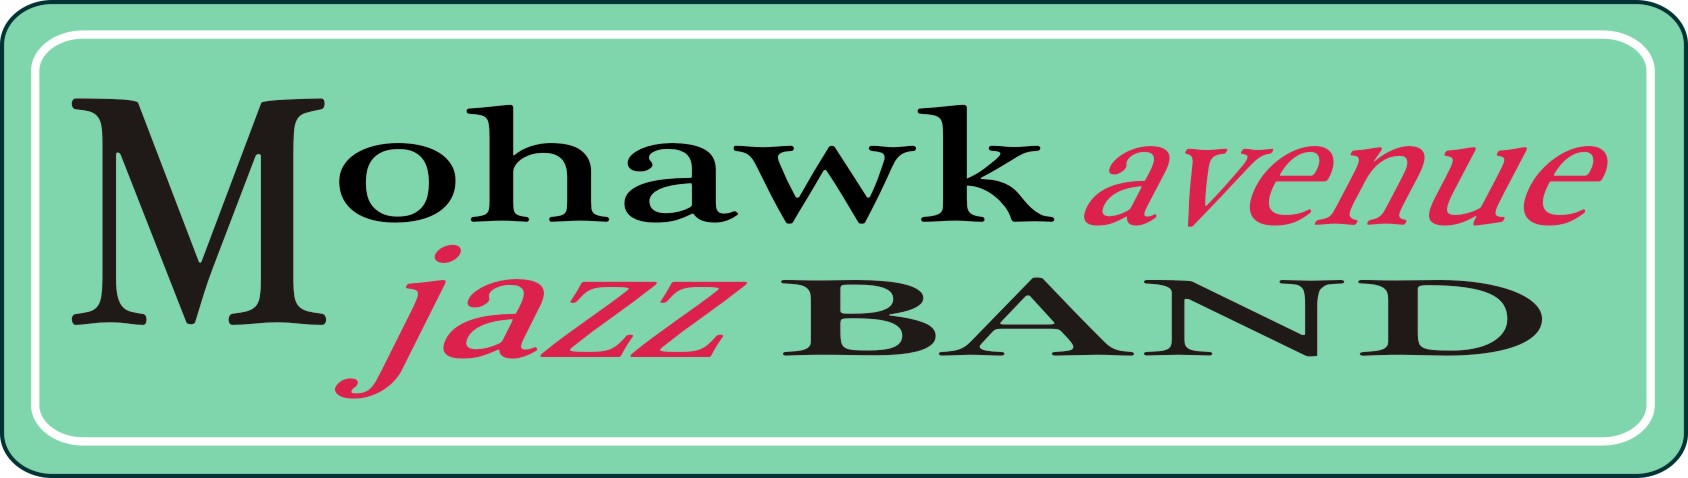 Mohawk Avenue Jazz Band